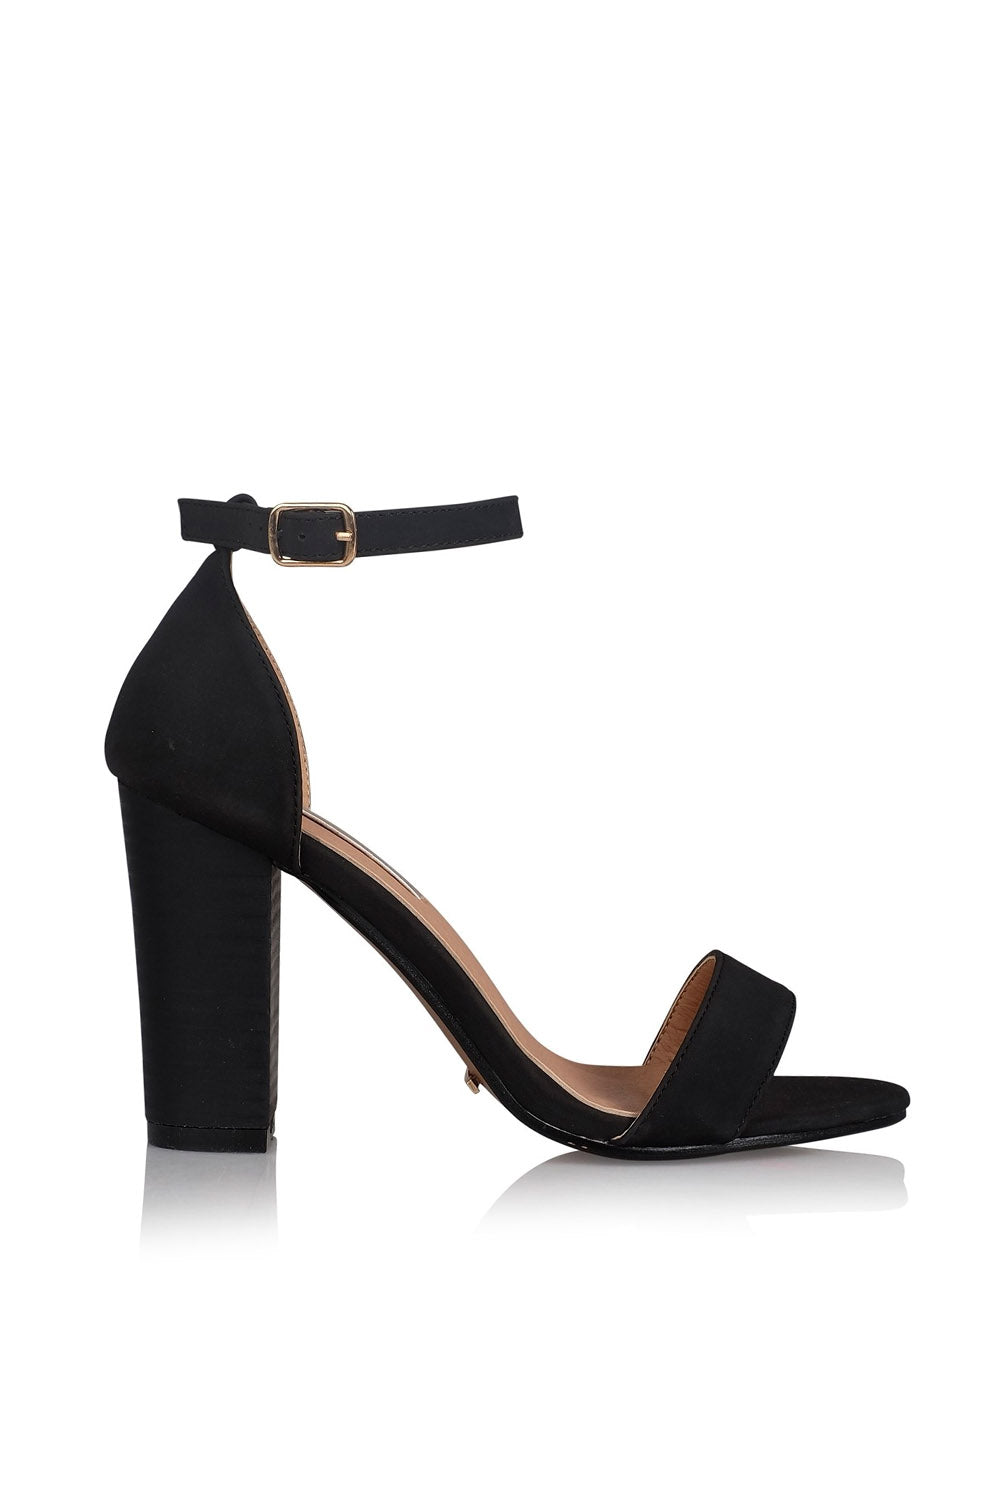 Aurella Heels by Billini in Black